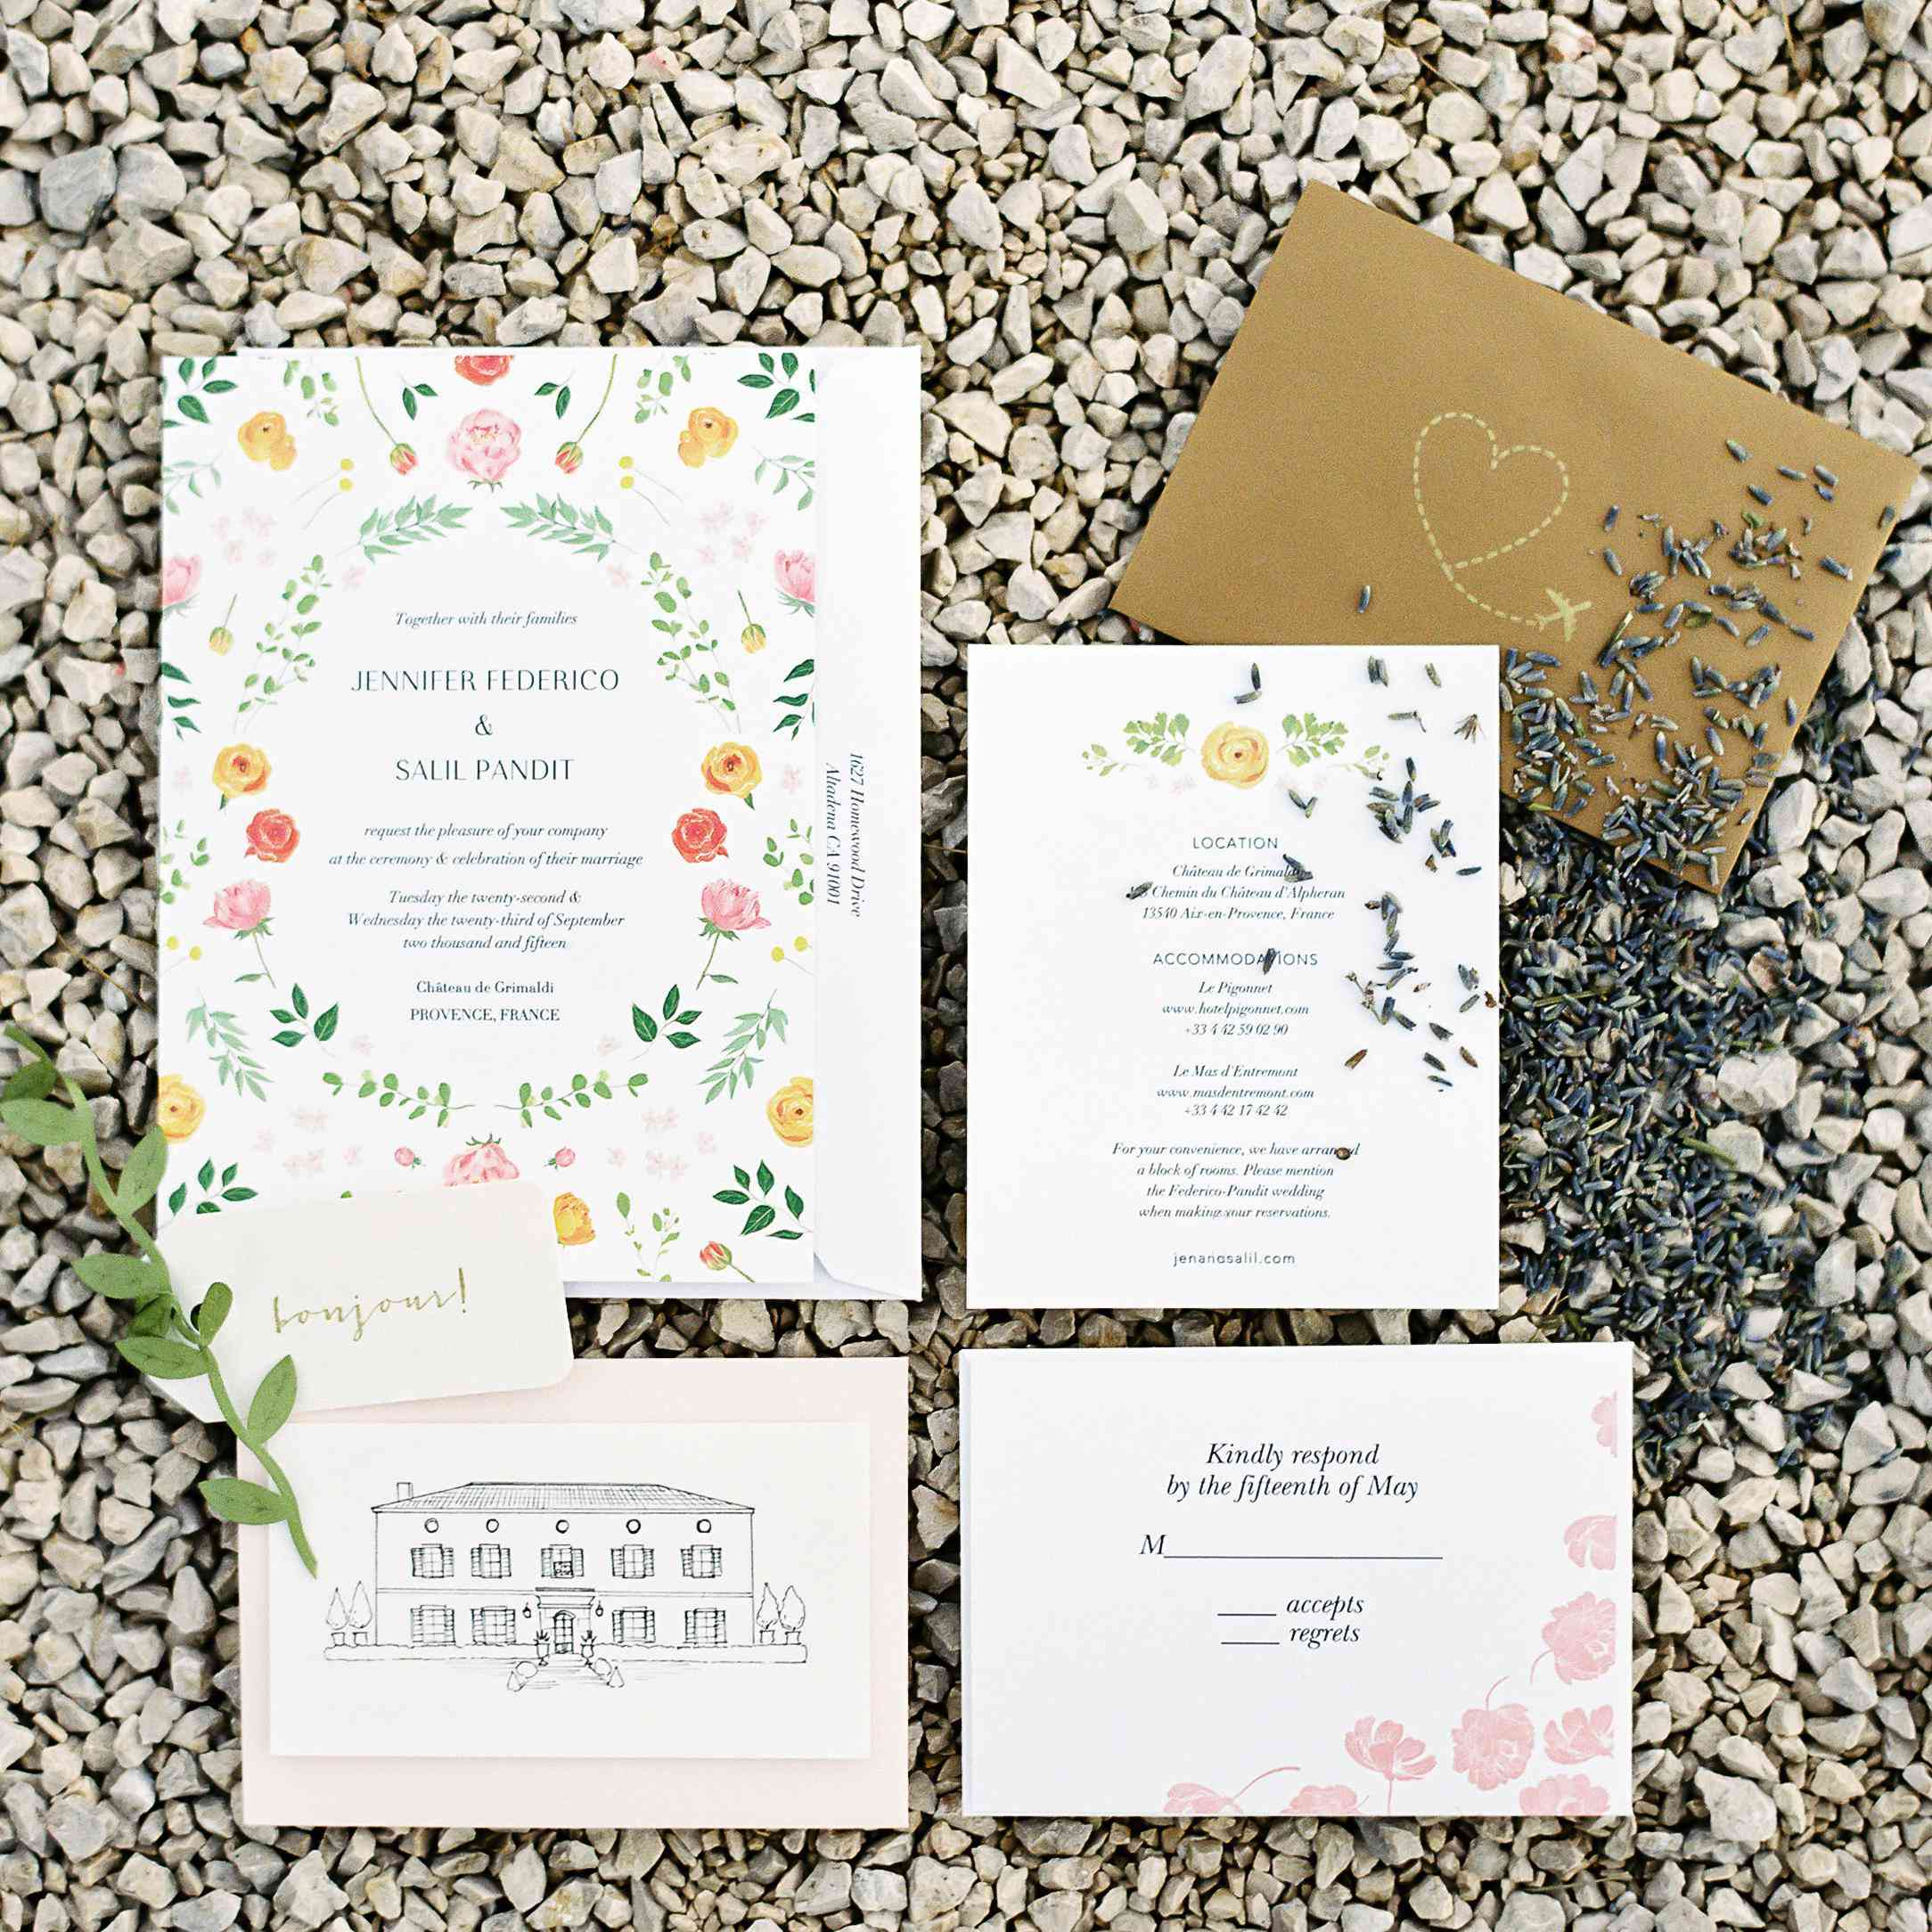 When Do You Send Out Wedding Invitations.What To Do If Any Of Your Save The Dates Or Wedding Invitations Get